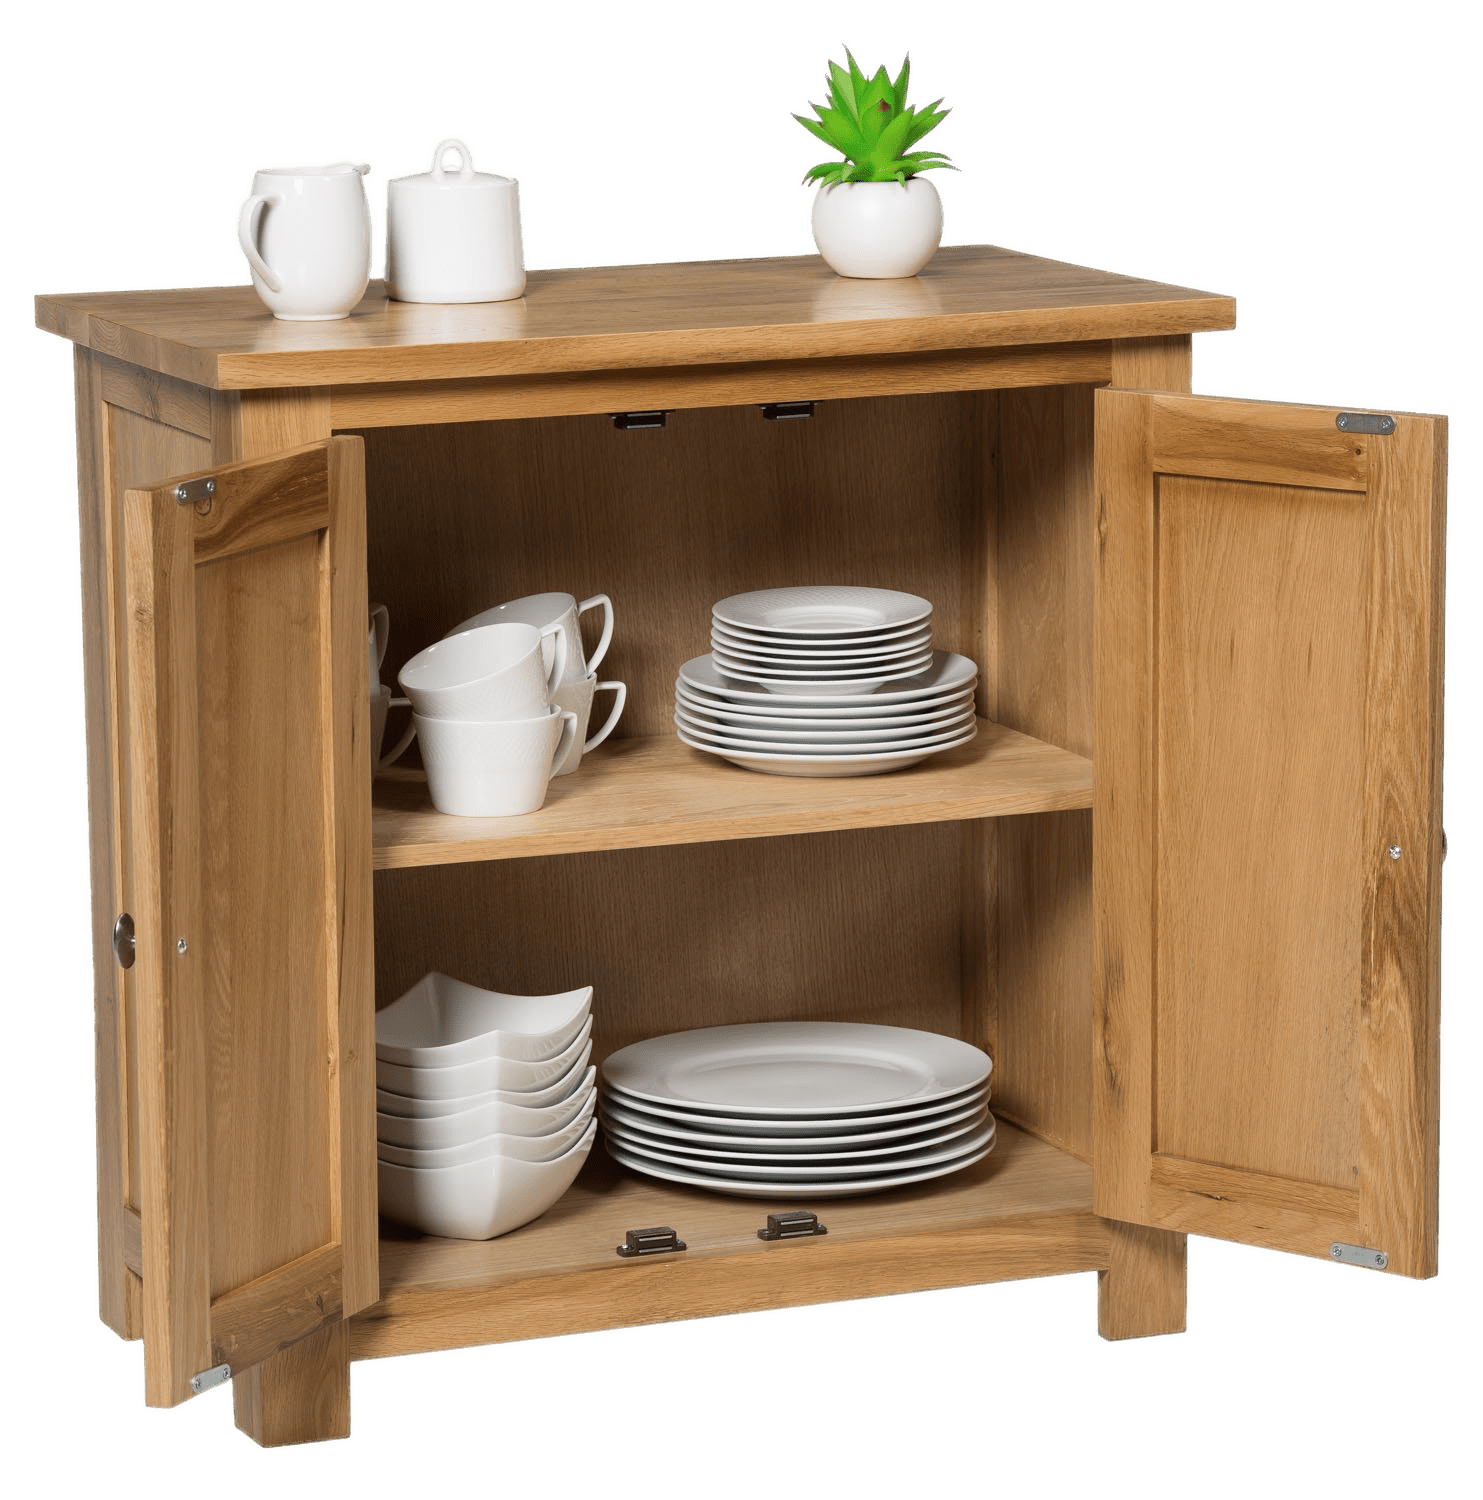 Furniture clipart tv cabinet. Wooden cupboard transparent png